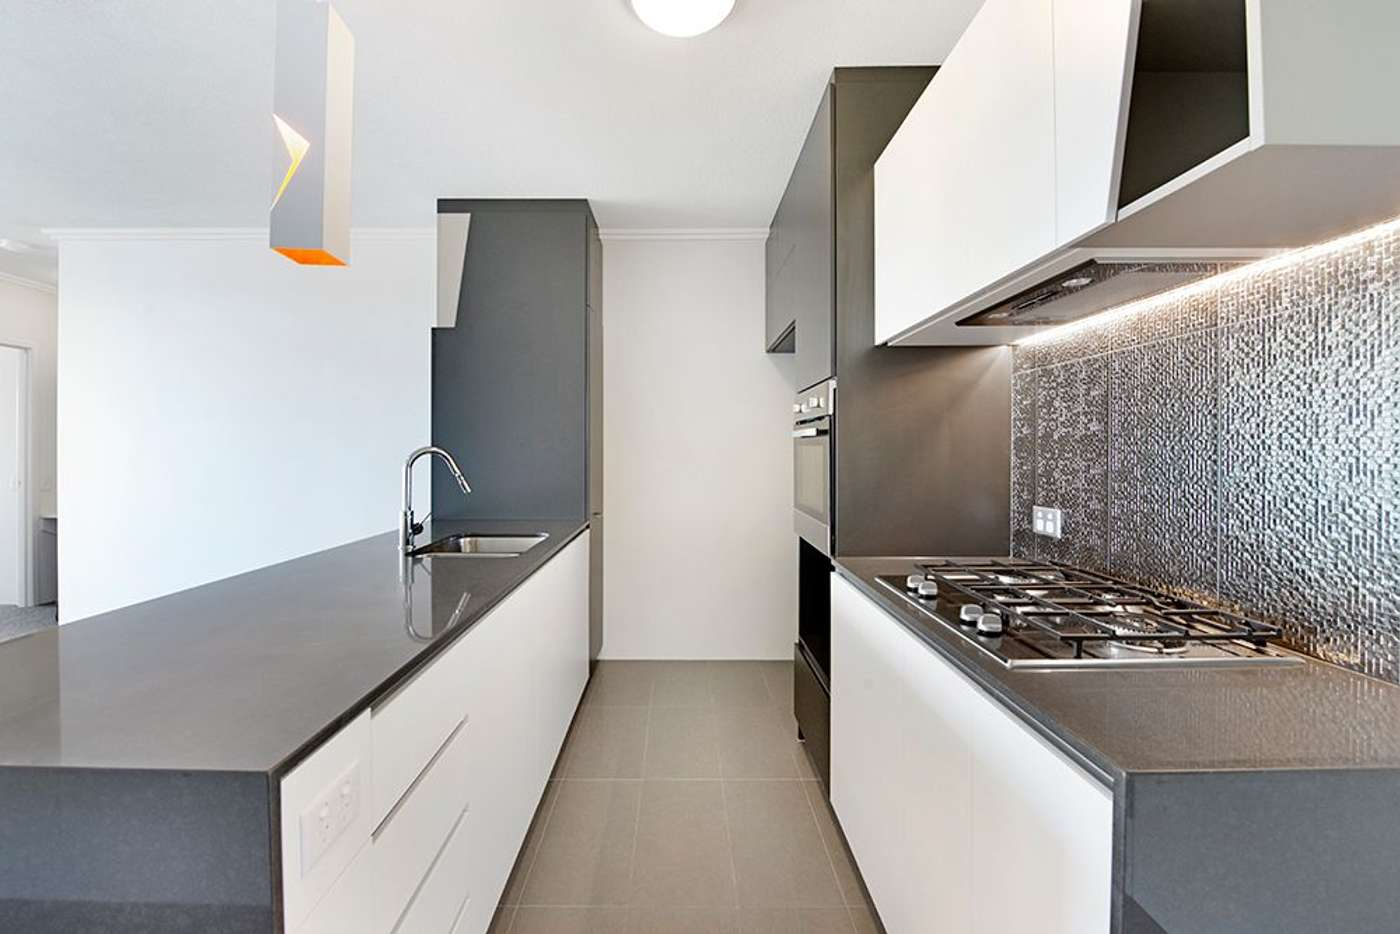 Main view of Homely apartment listing, 416/50 Connor Street, Kangaroo Point QLD 4169